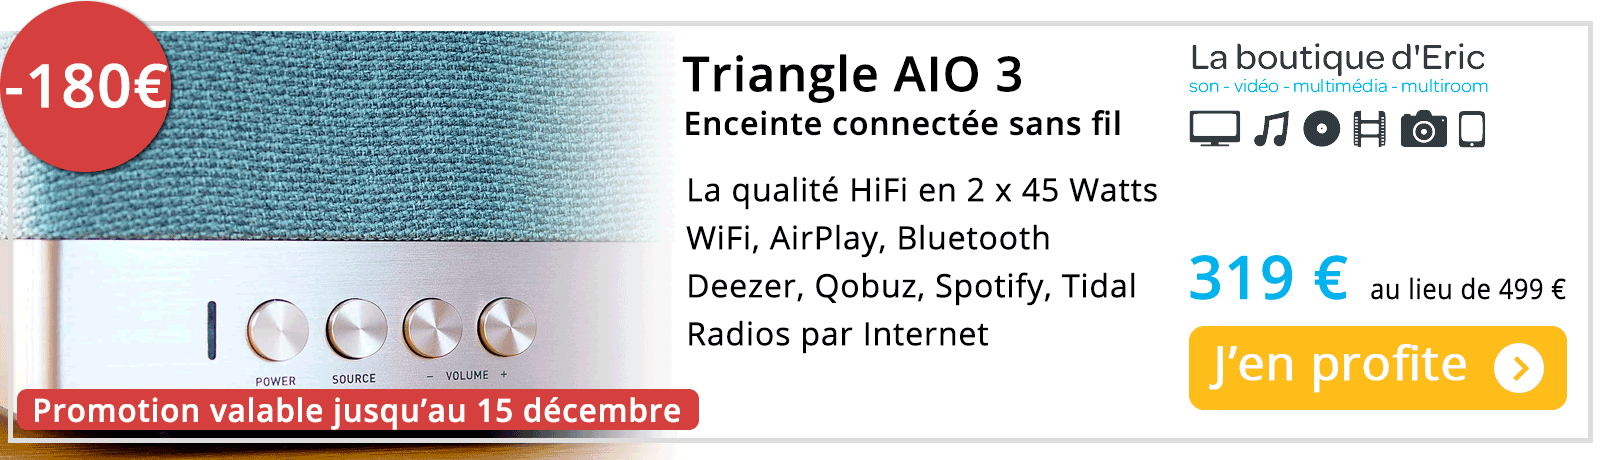 Enceinte HiFi active WiFi, AirPlay, Bluetooth Triangle AIO3